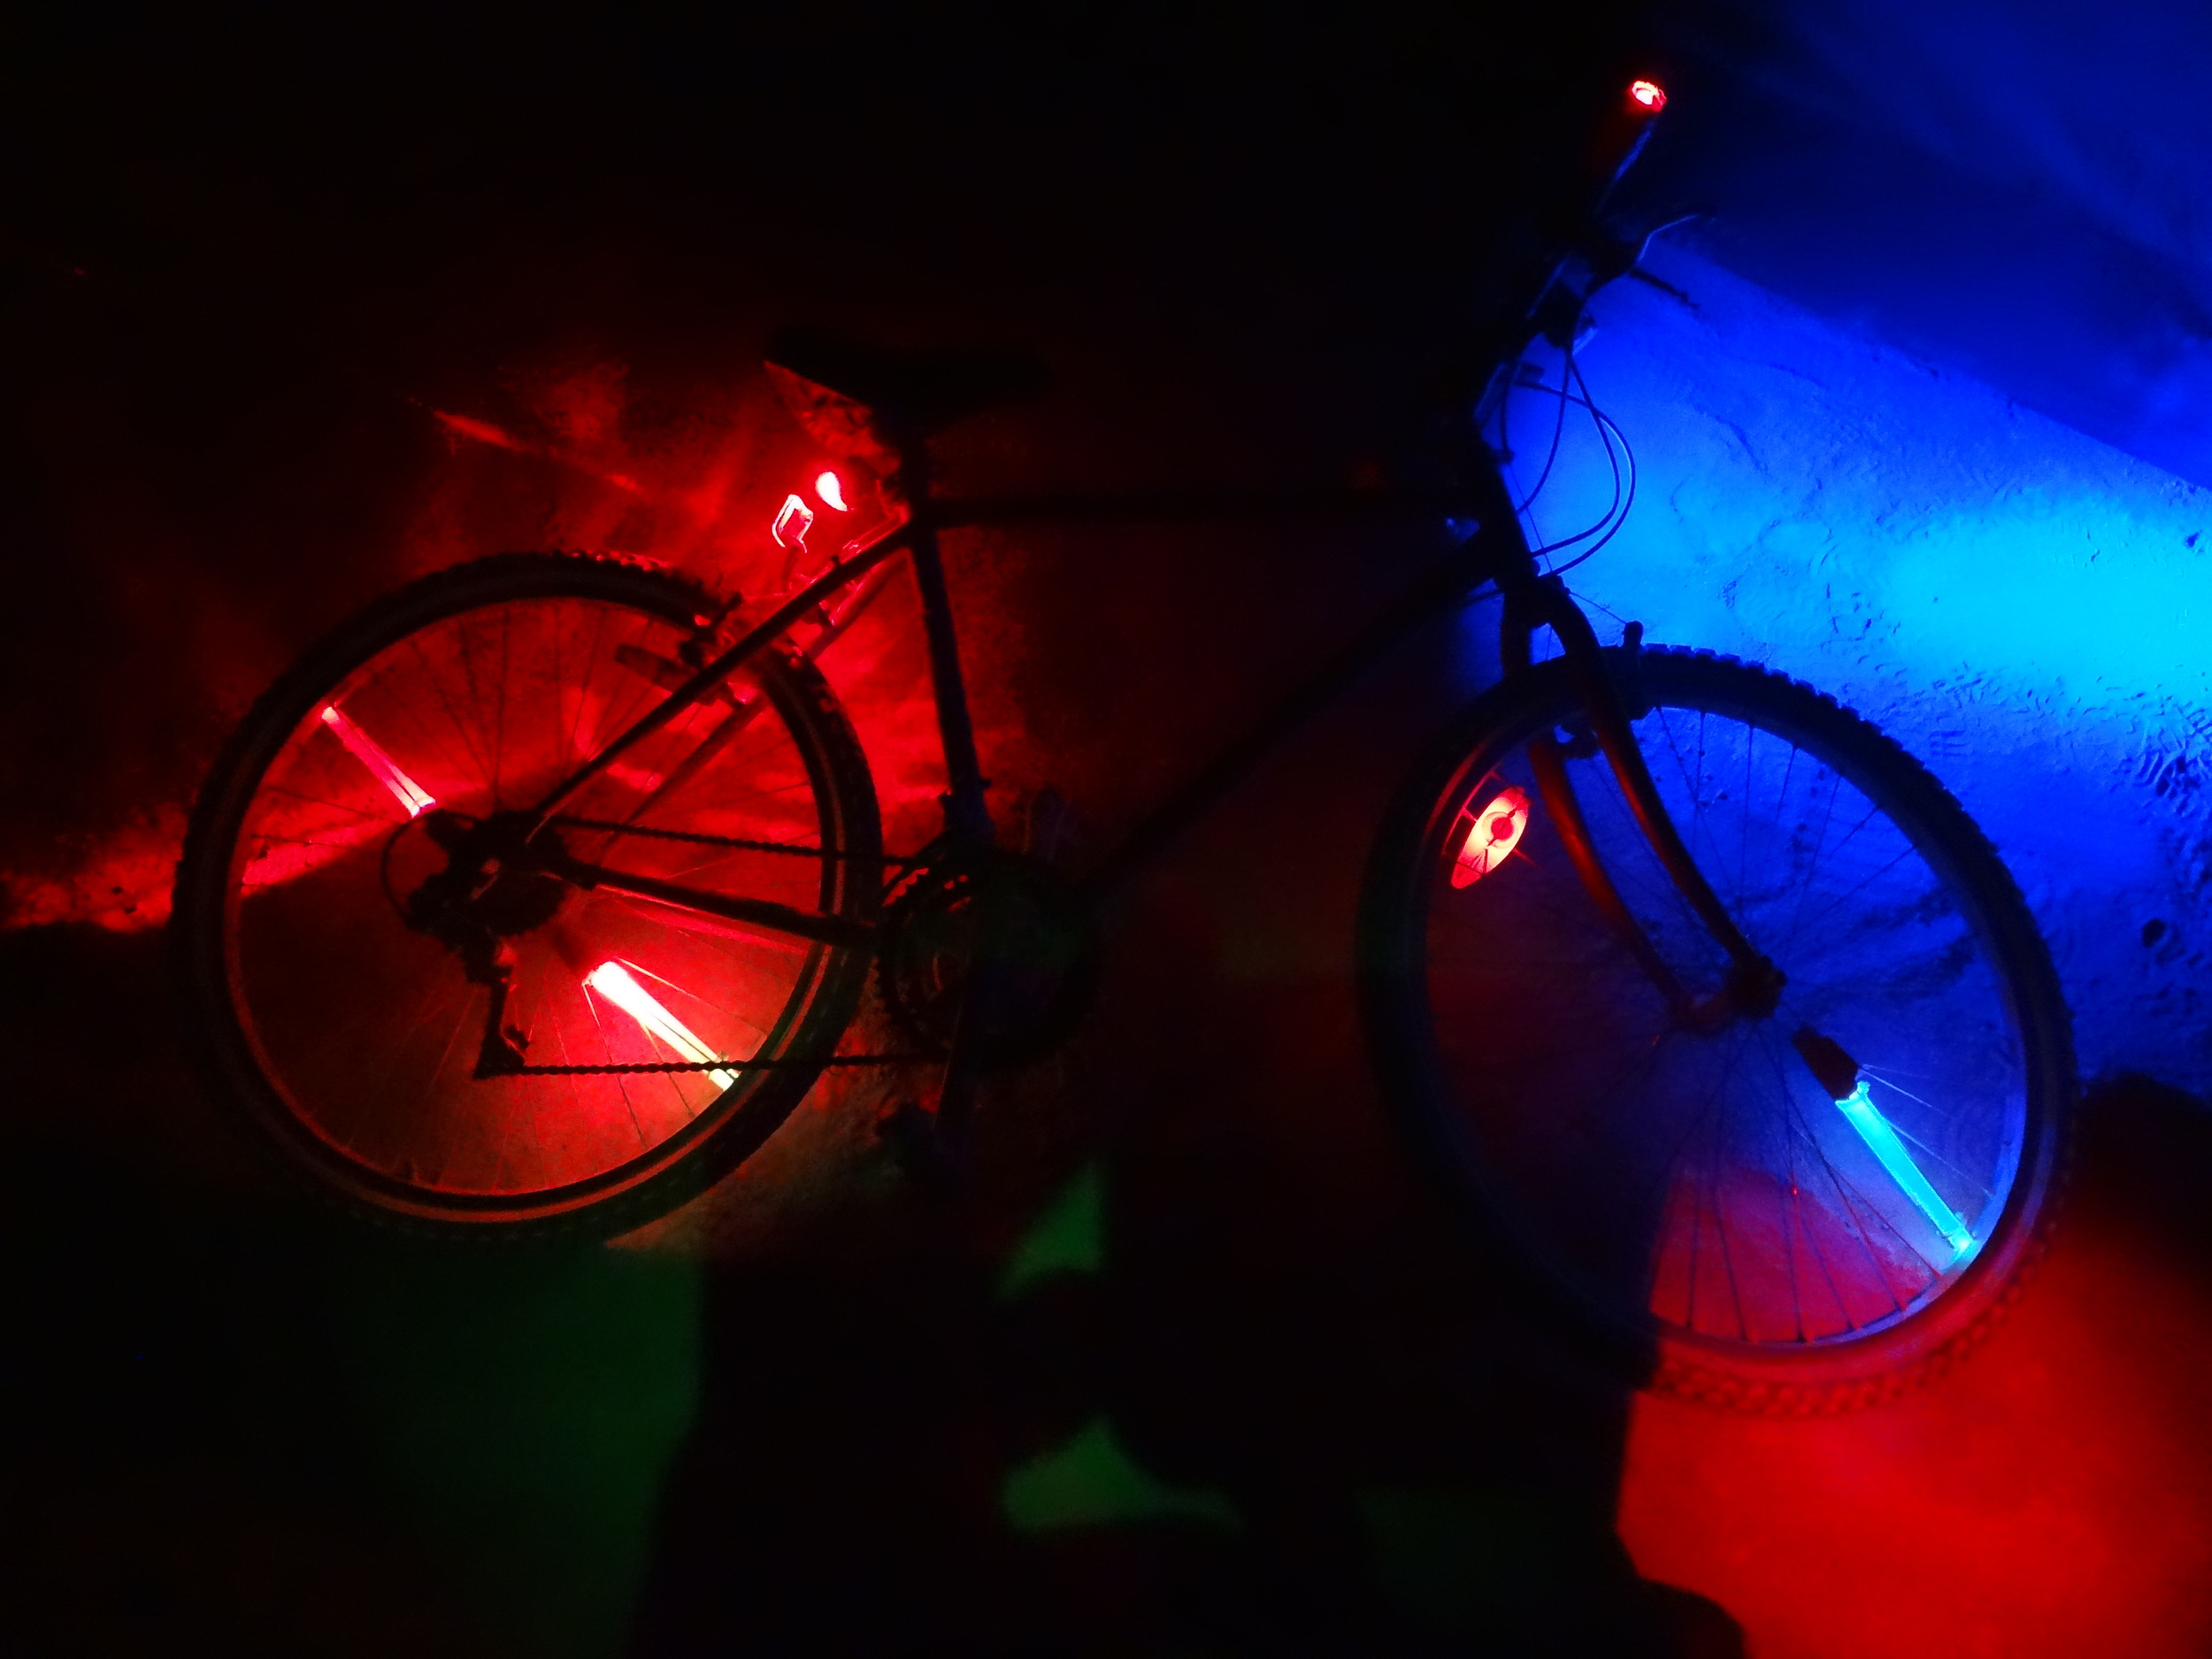 LED lights pulsate in different colors, creating interesting patterns while bikers go along in the night. Combined with my bicycle, I had fourteen individual lights attached to me, and it was nowhere near excessive.